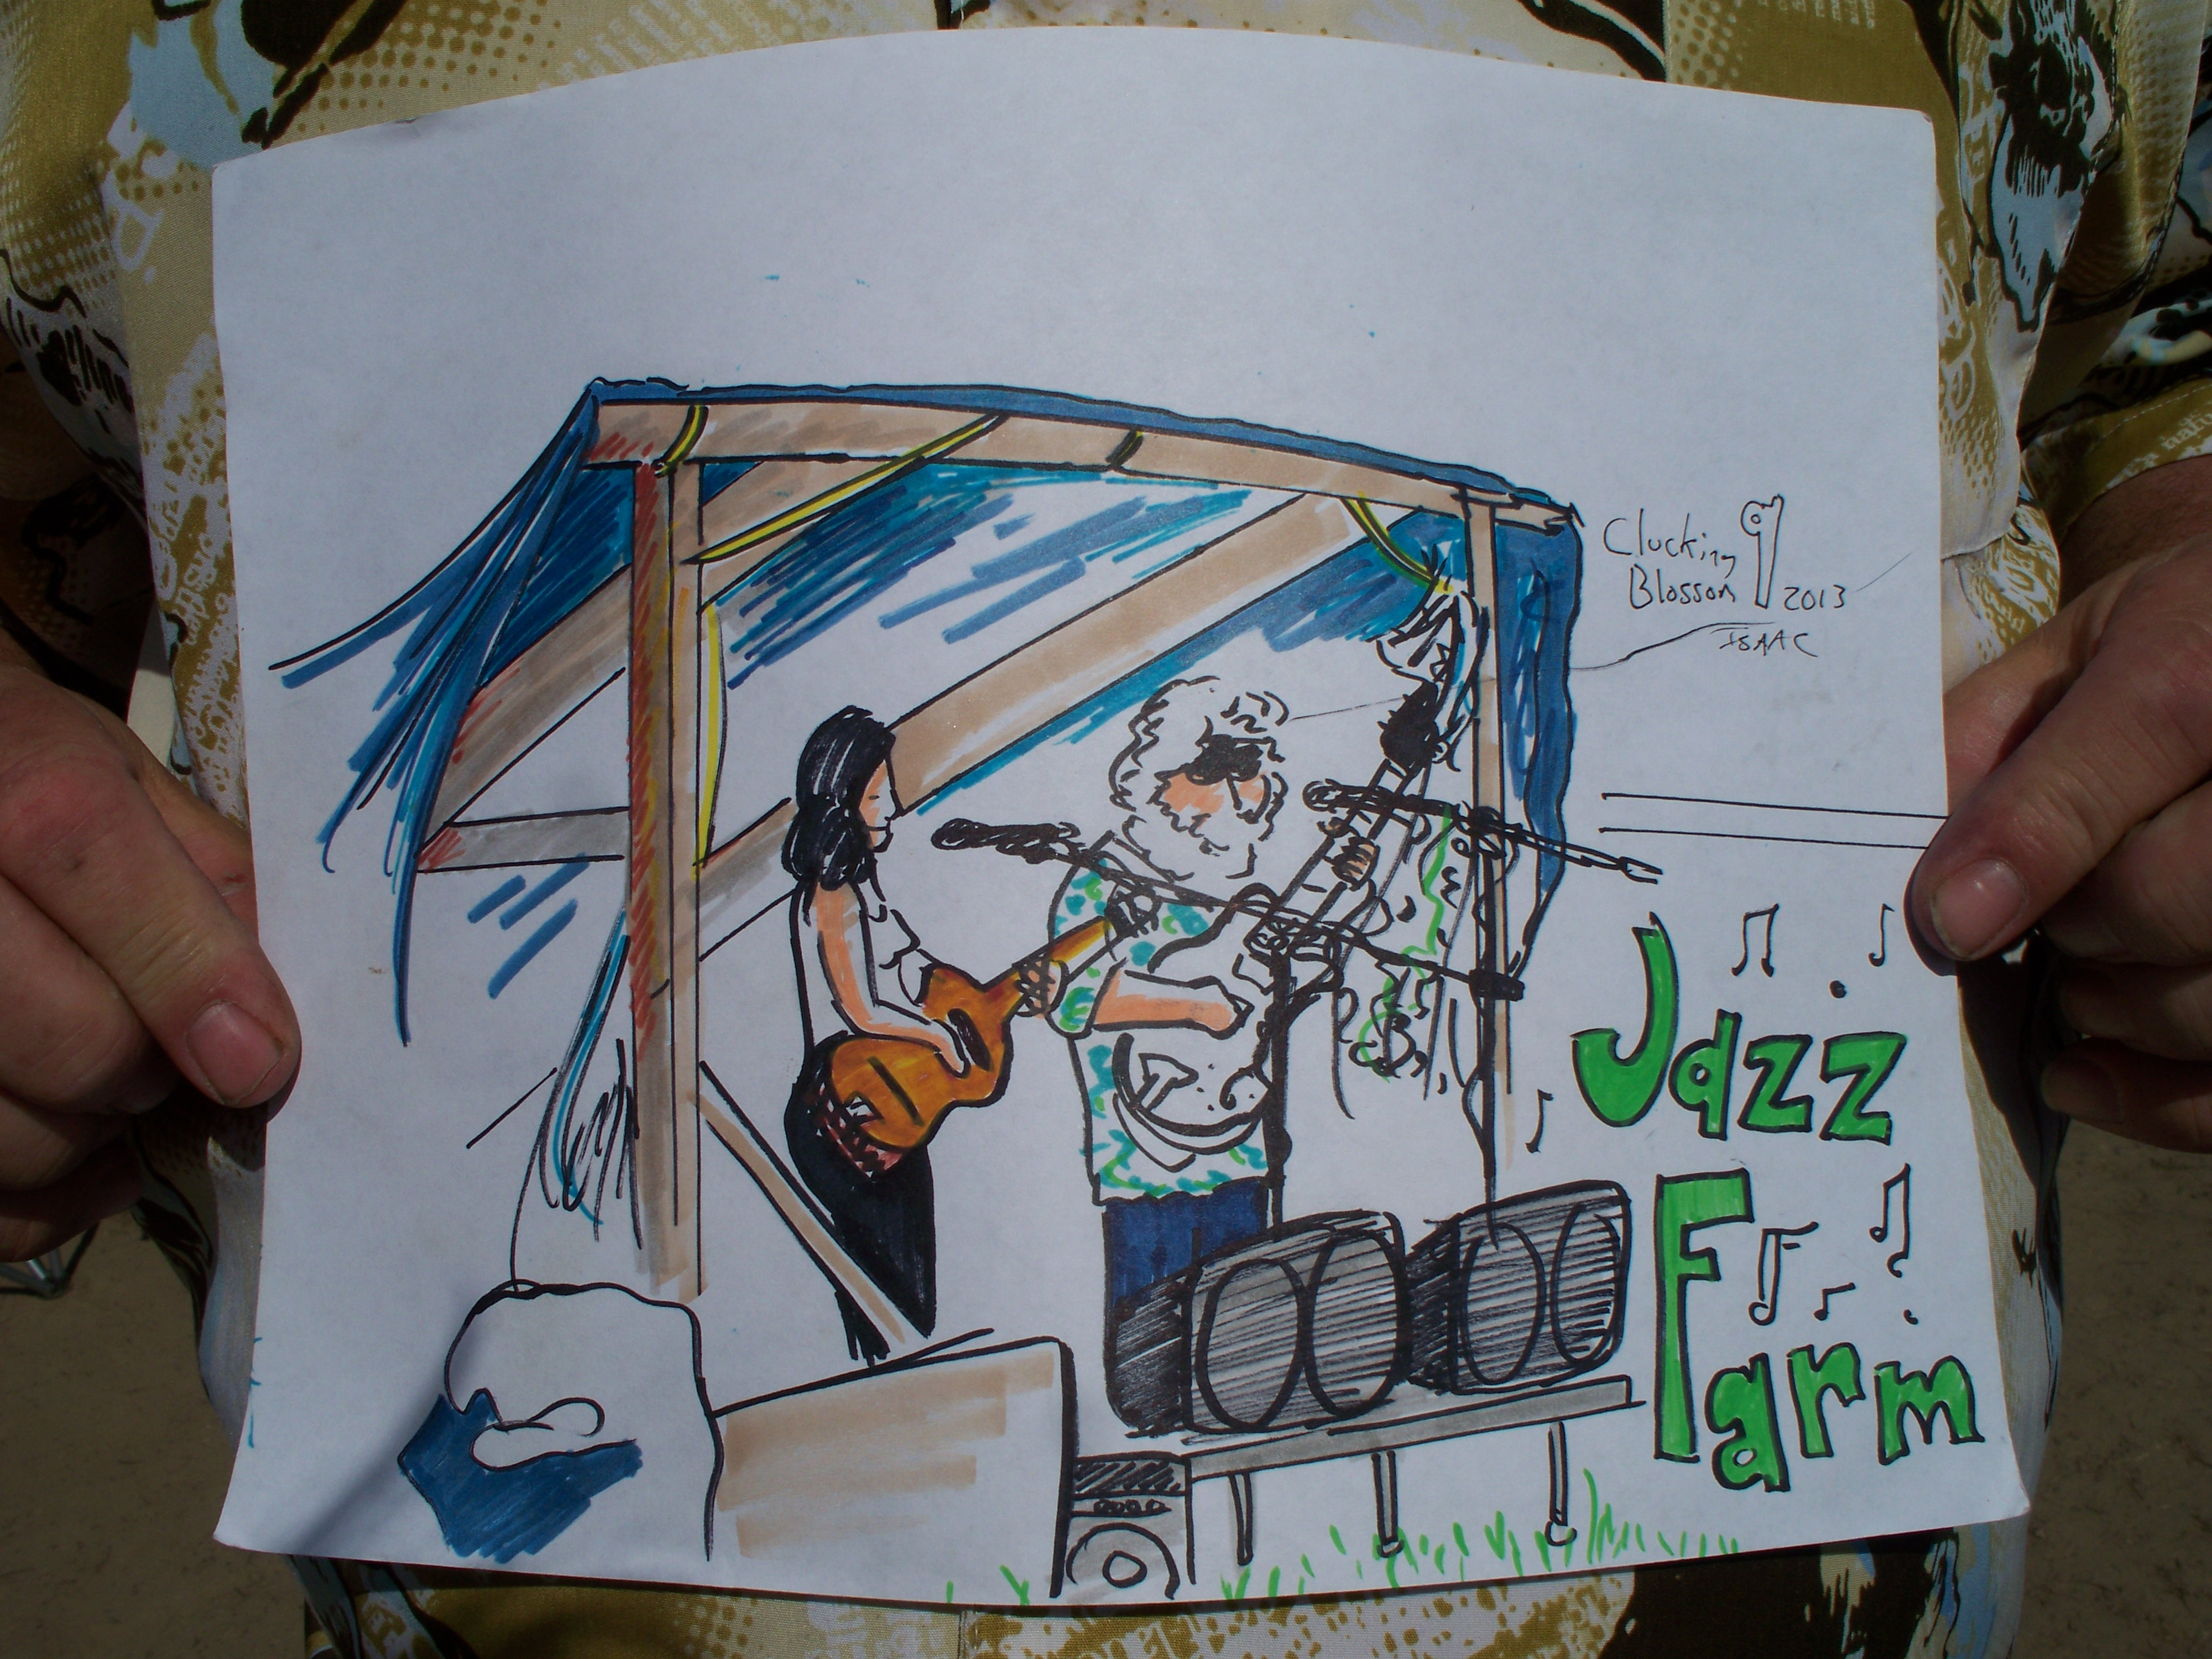 Jazz Farm and a color vision of the stage